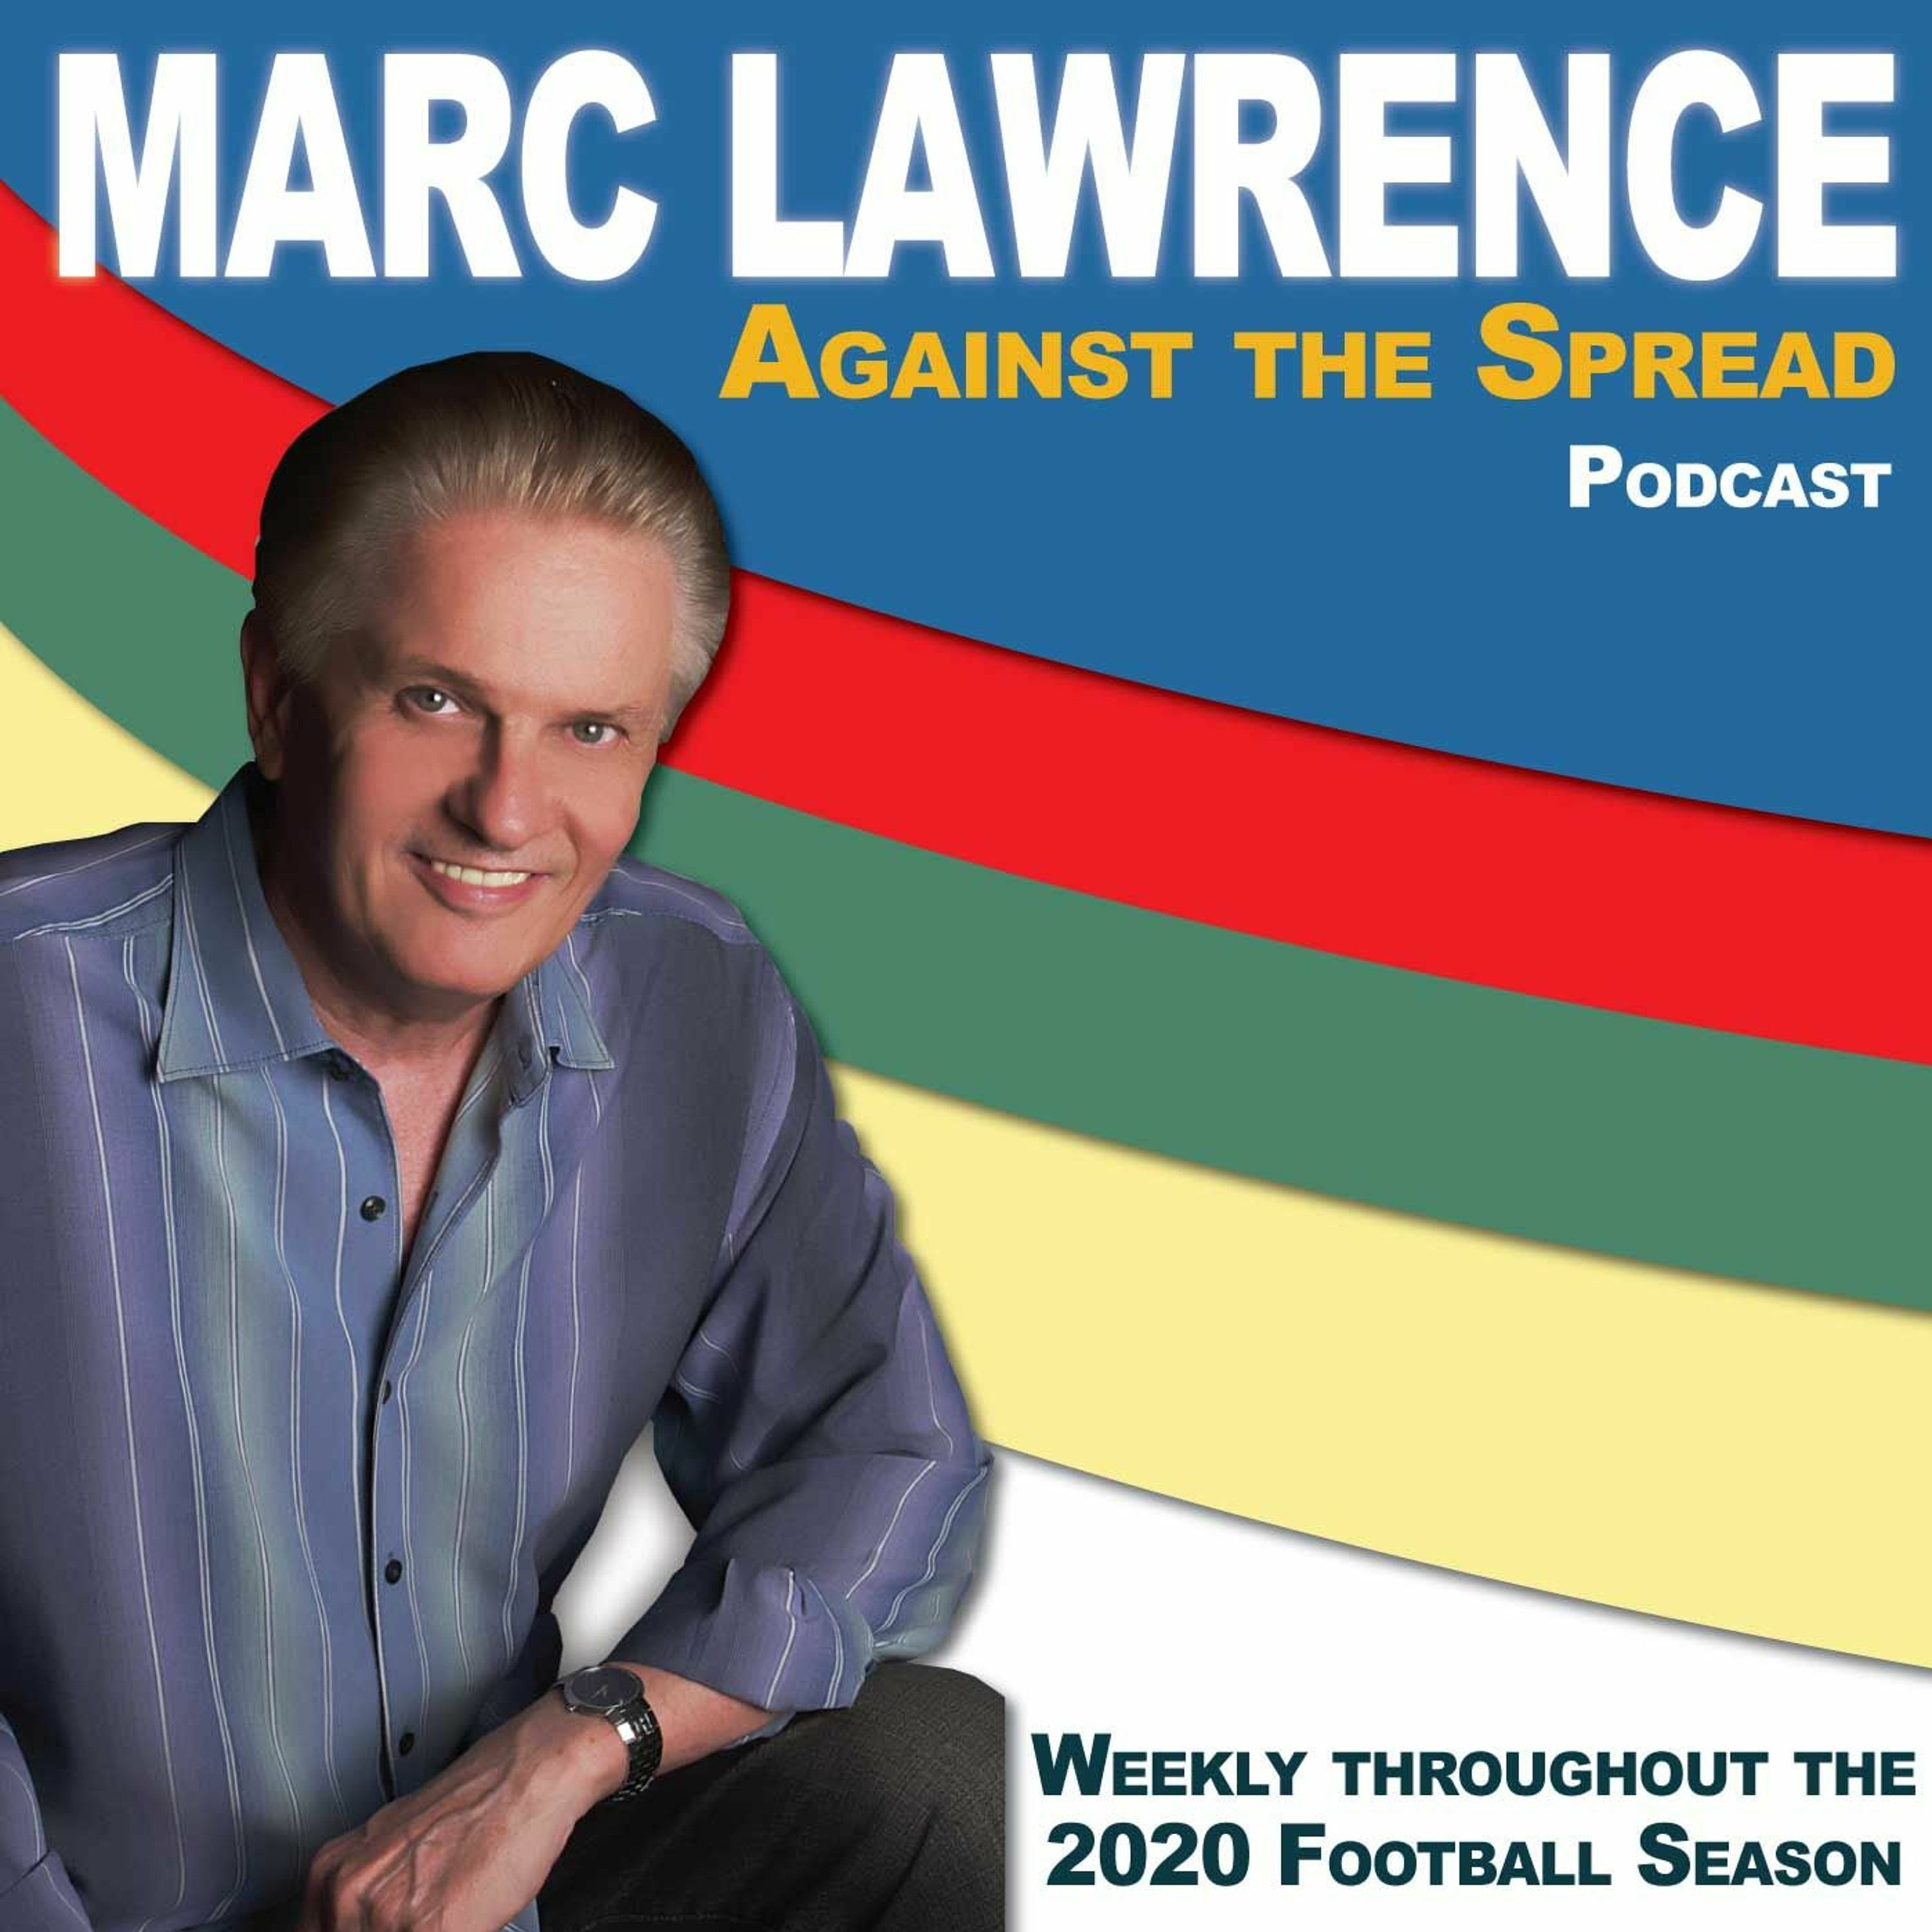 2020-10-14 - Marc Lawrence...Against the Spread